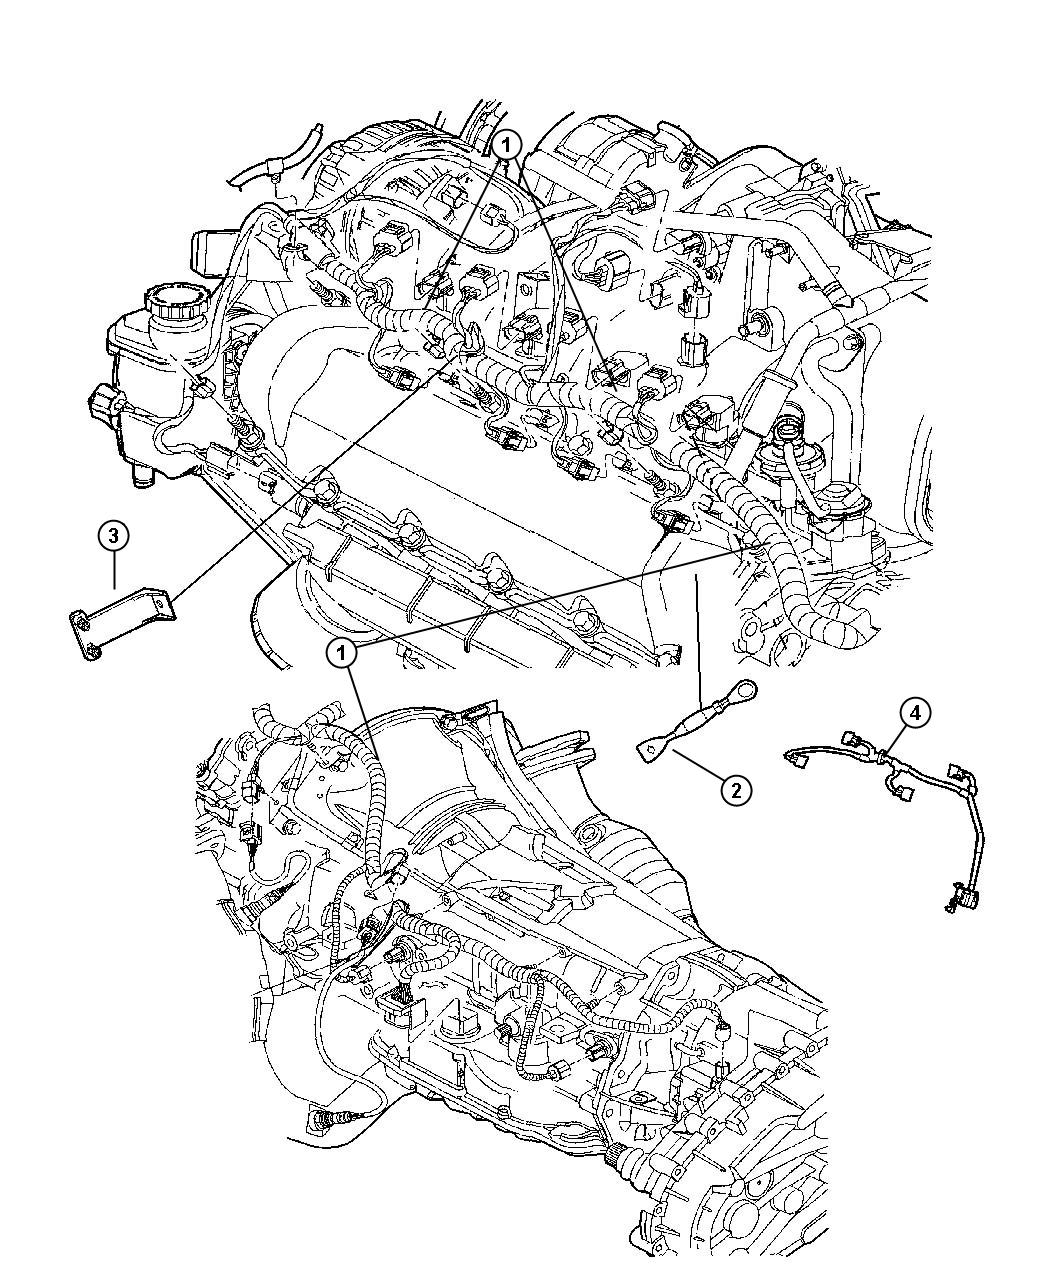 top suggestions plymouth engine parts diagram :